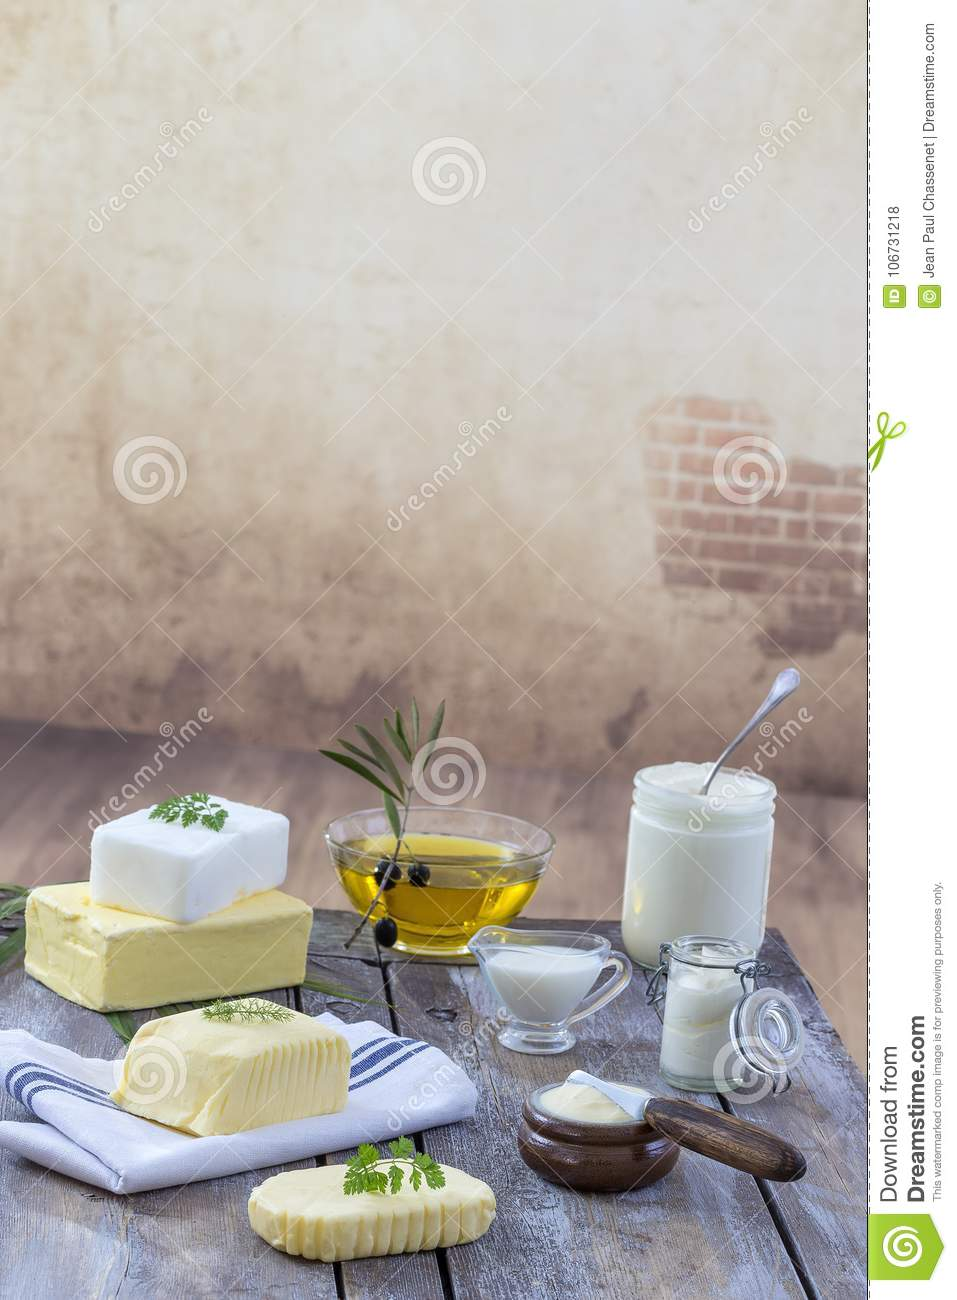 Food Fats and oil : set of dairy product and oil and animal fats on a wooden background